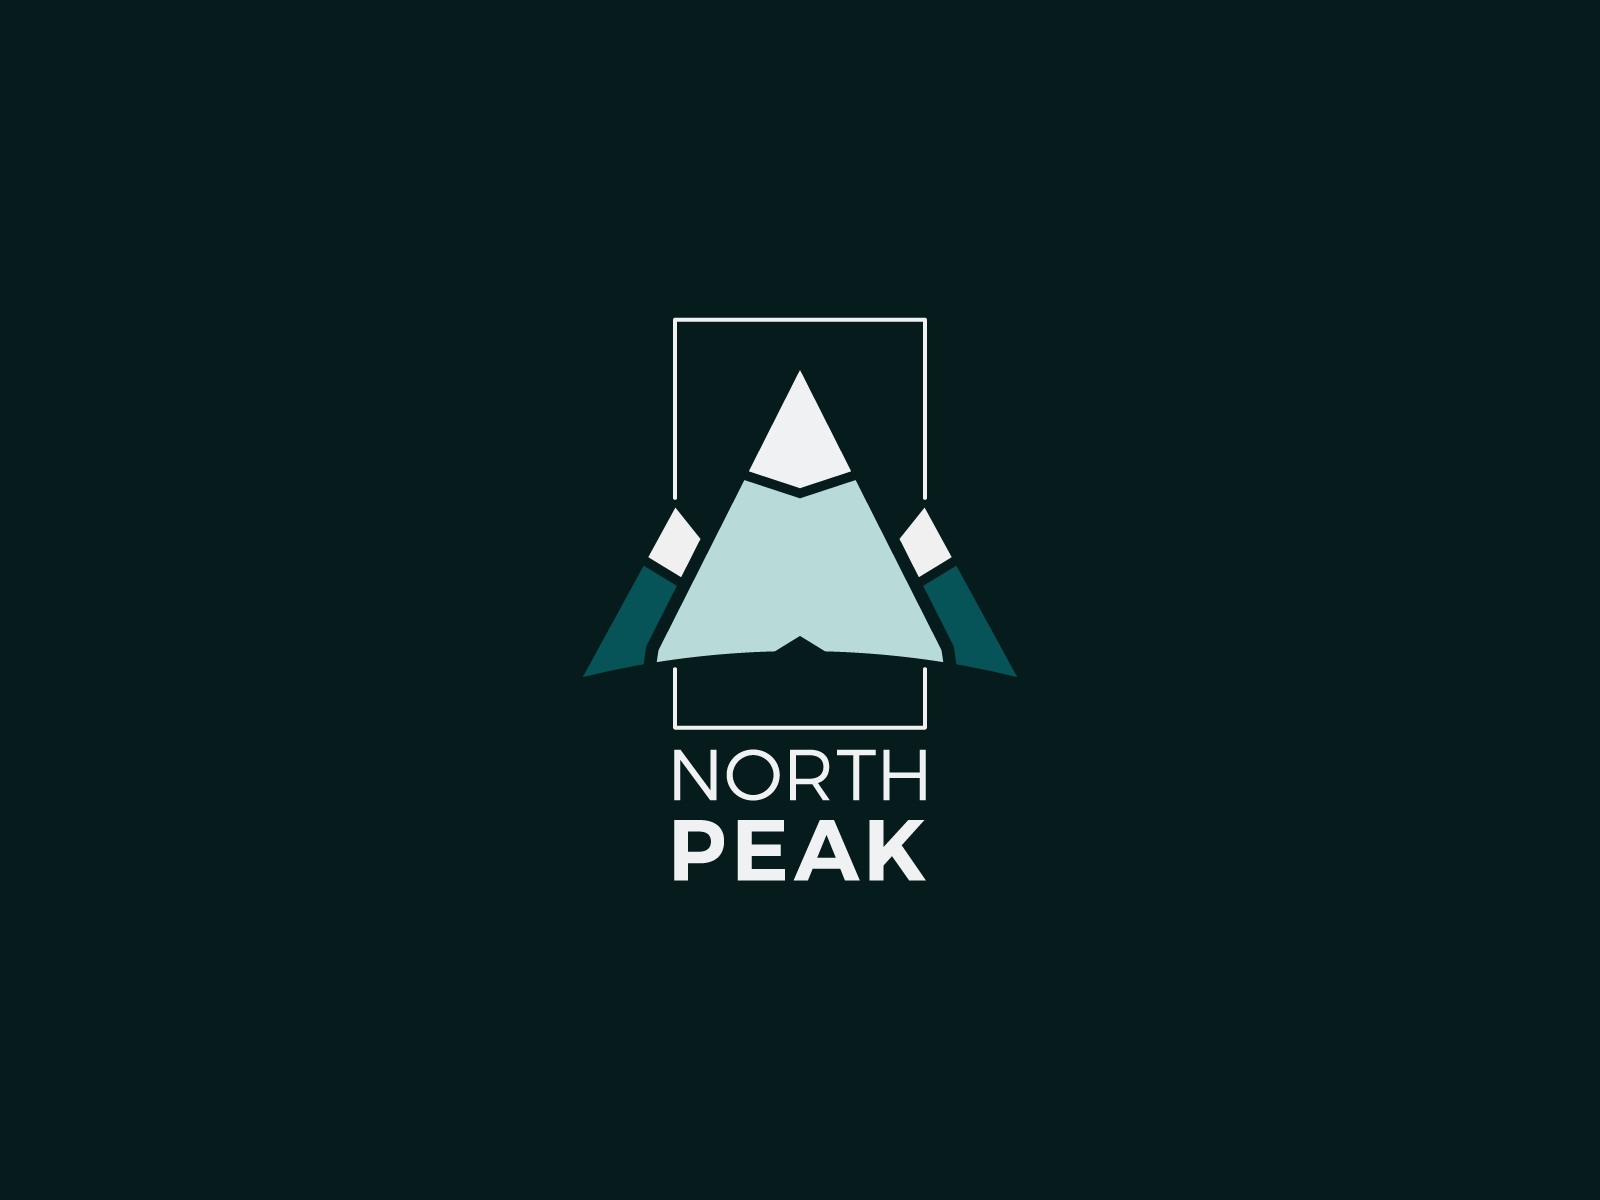 North Peak Logo by Mario Madjarov on Dribbble.